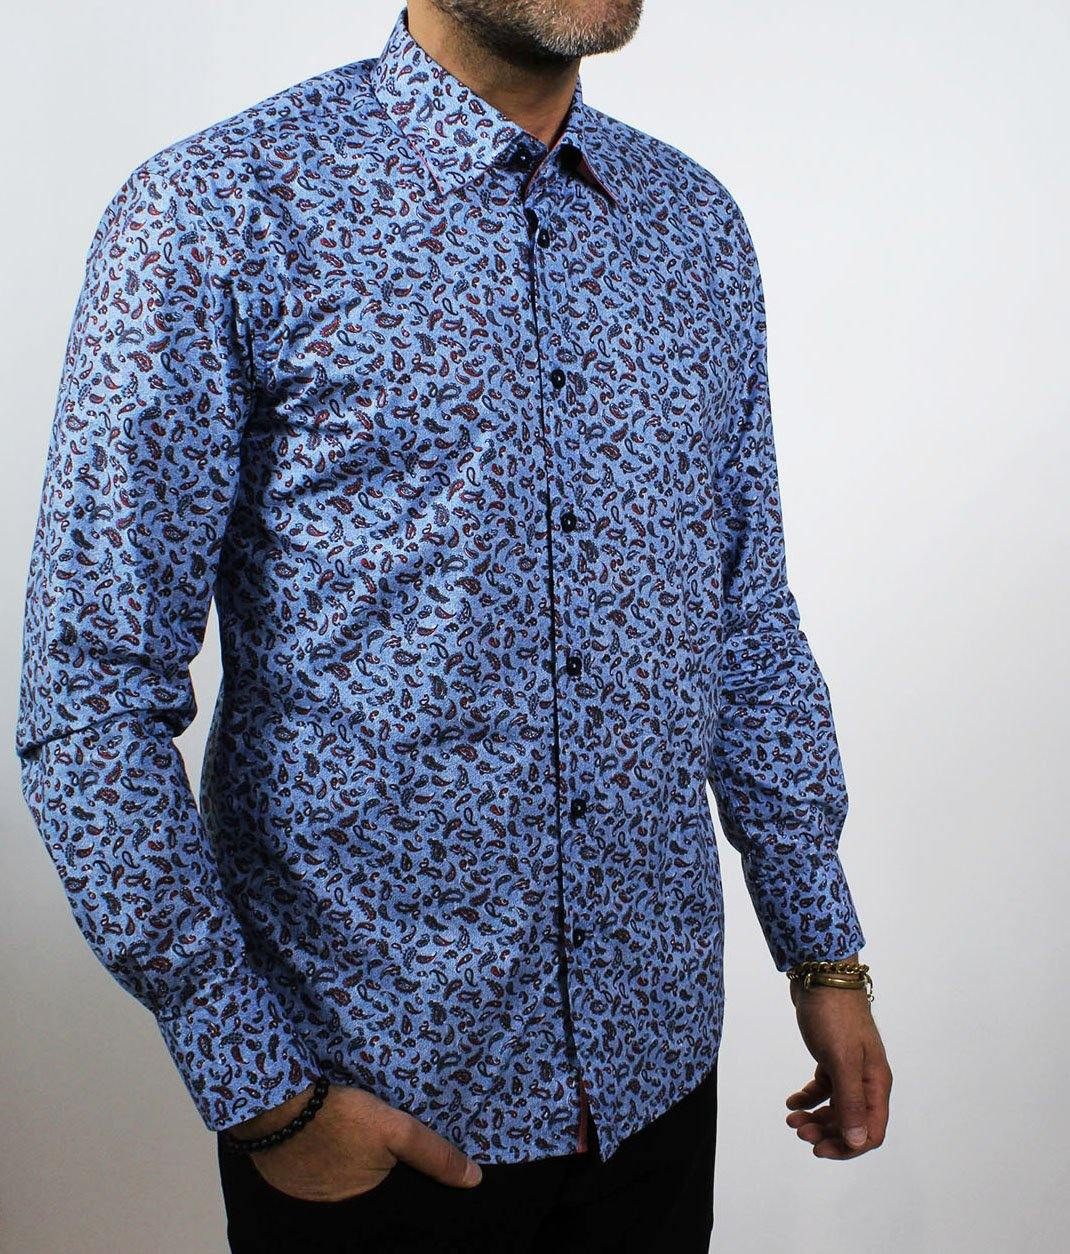 District Shirt - Haight & Ashbury